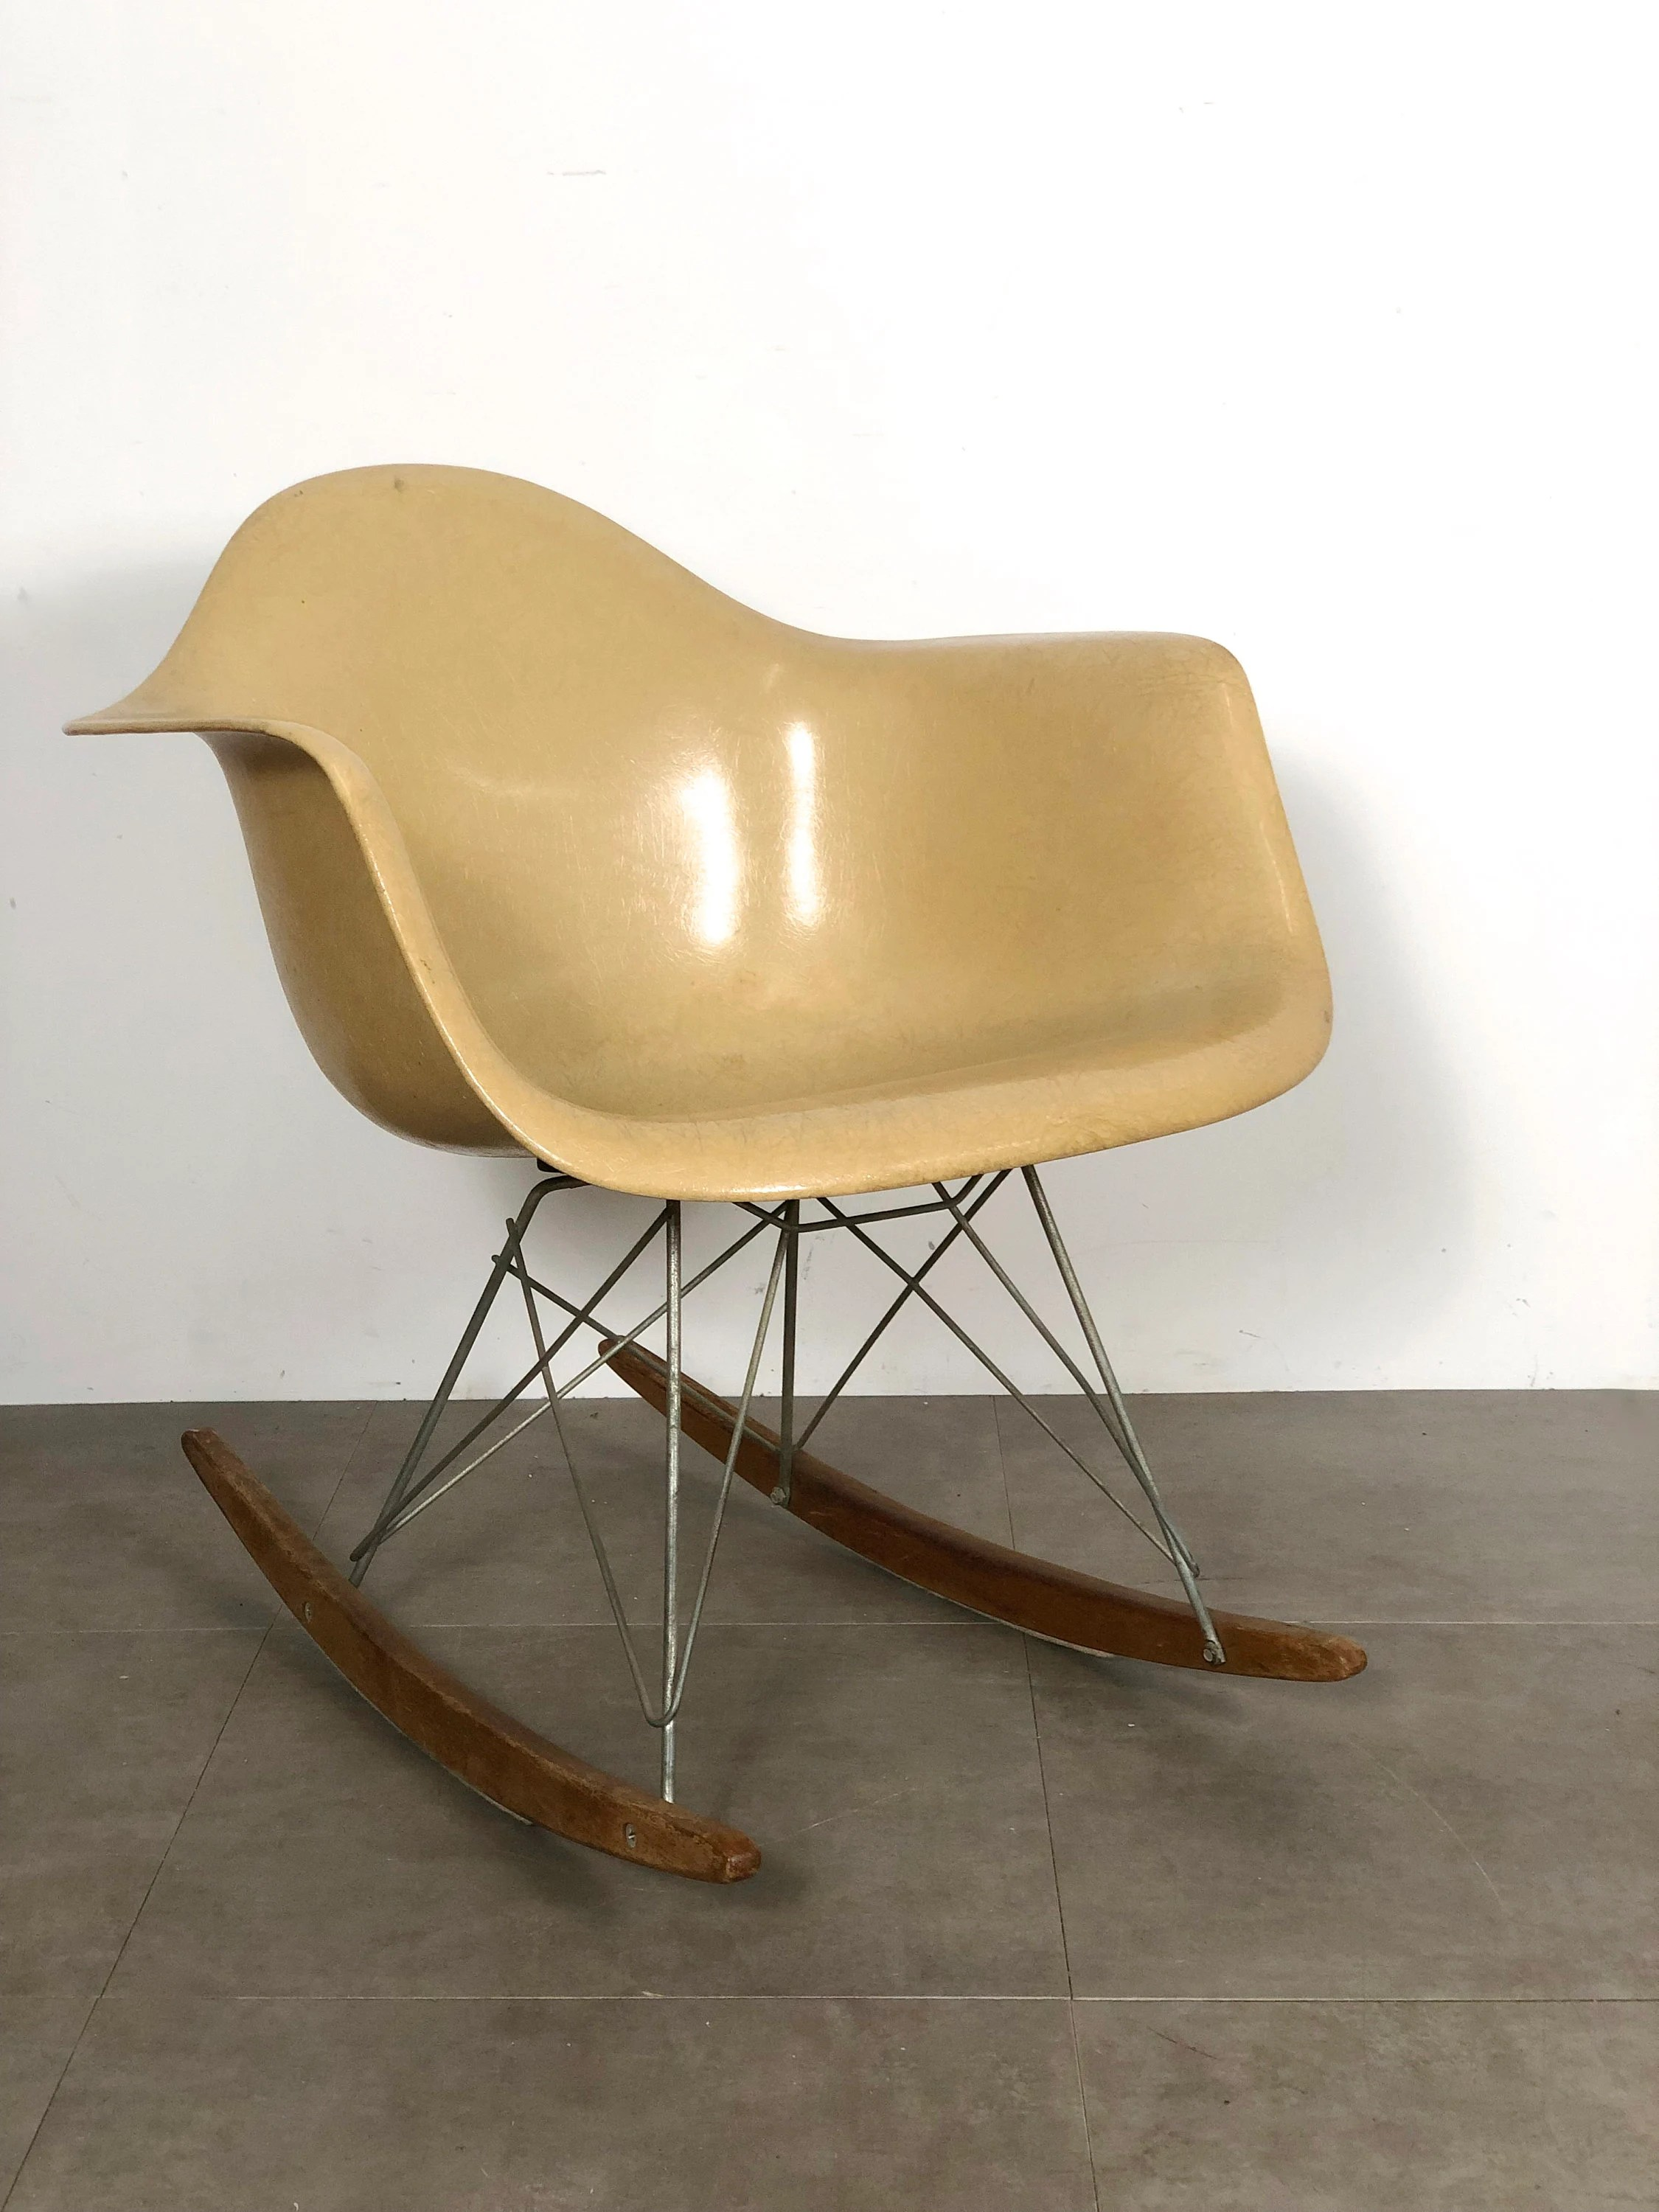 Eames Rar Zenith Rar Fiberglass Arm Shell Rocking Chair Charles Eames 1950 S